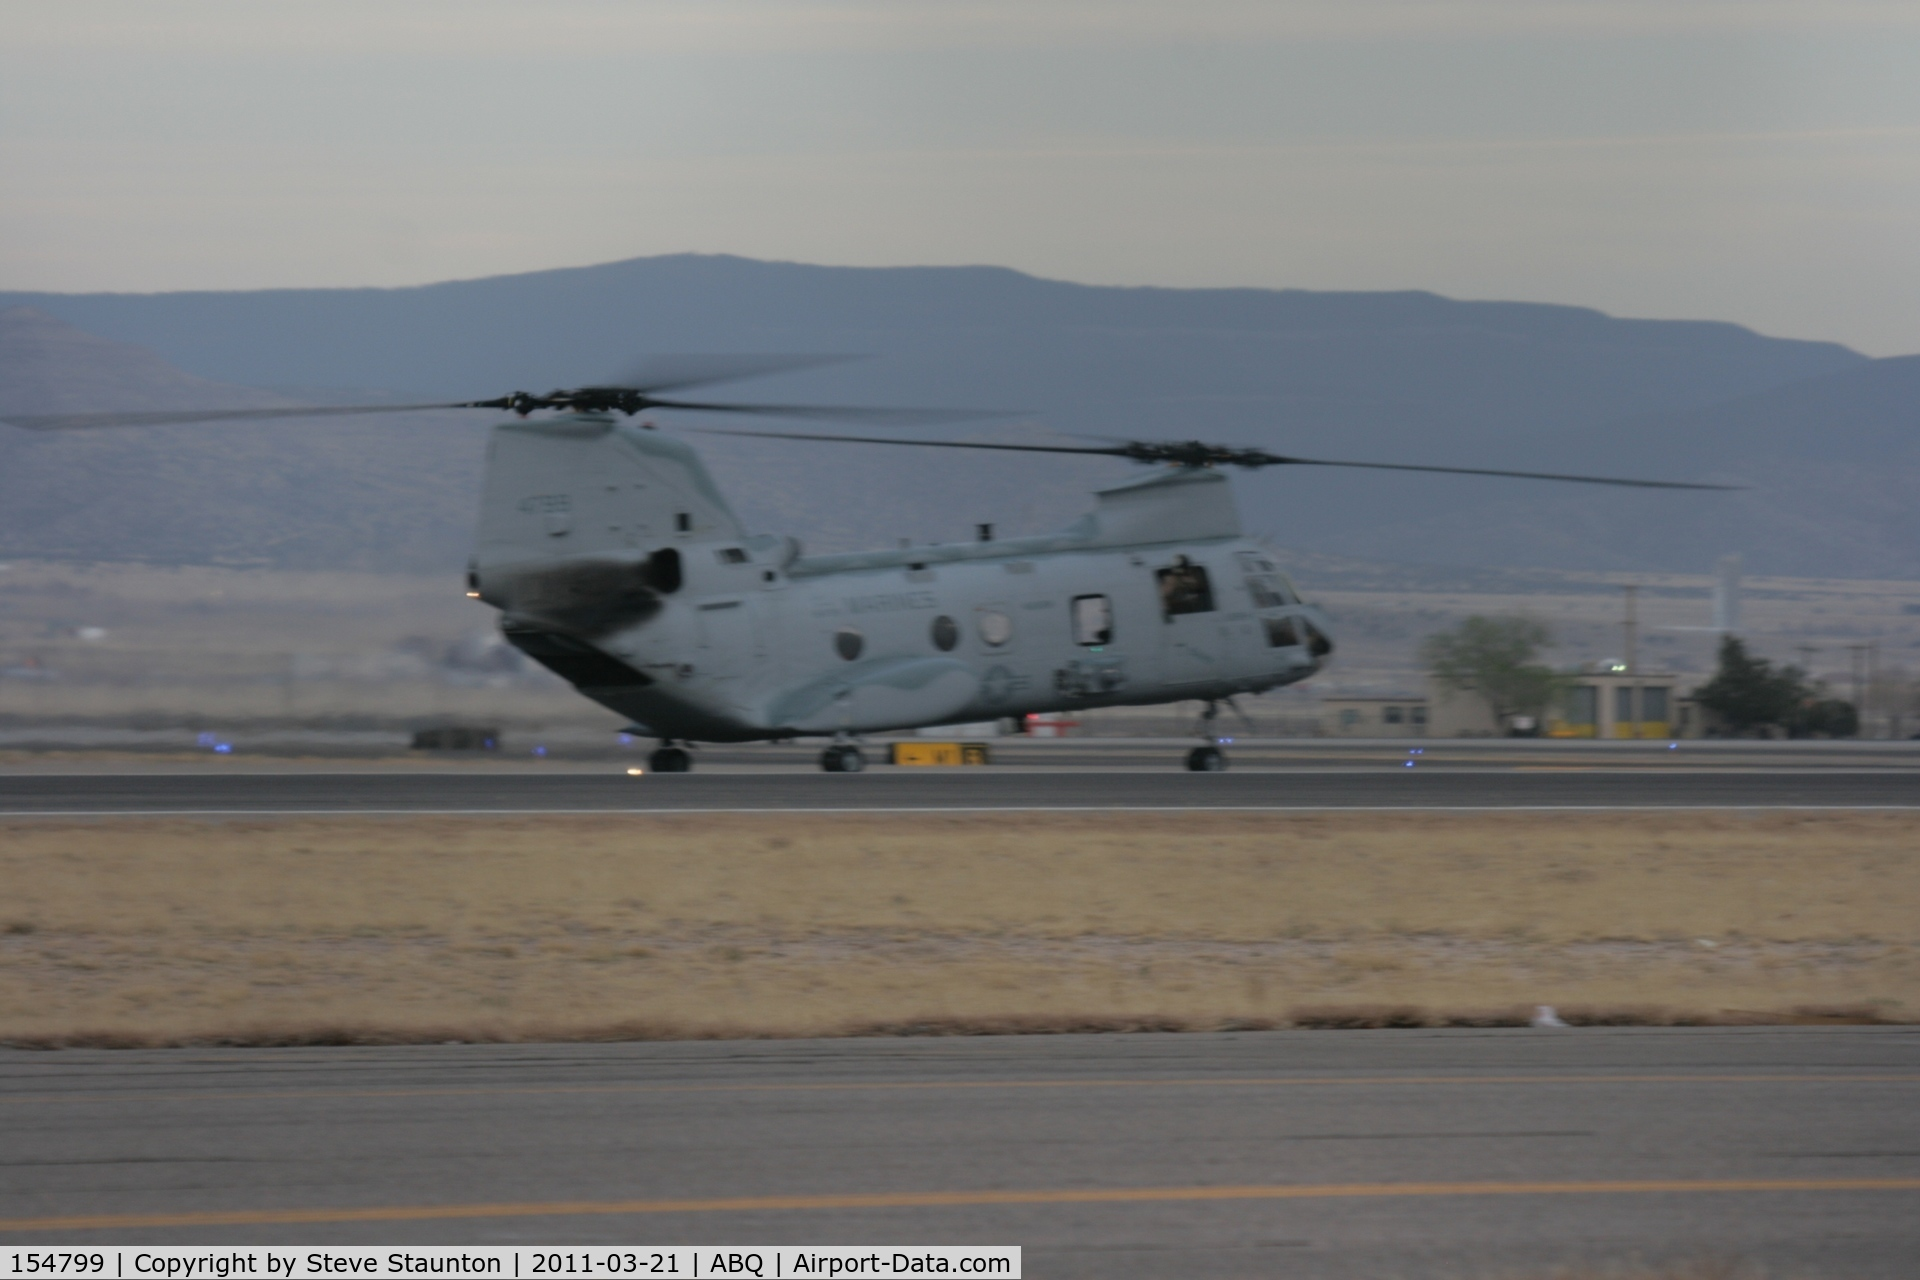 154799, Boeing Vertol CH-46F Sea Knight C/N 2412, Taken at Alburquerque International Sunport Airport, New Mexico in March 2011 whilst on an Aeroprint Aviation tour